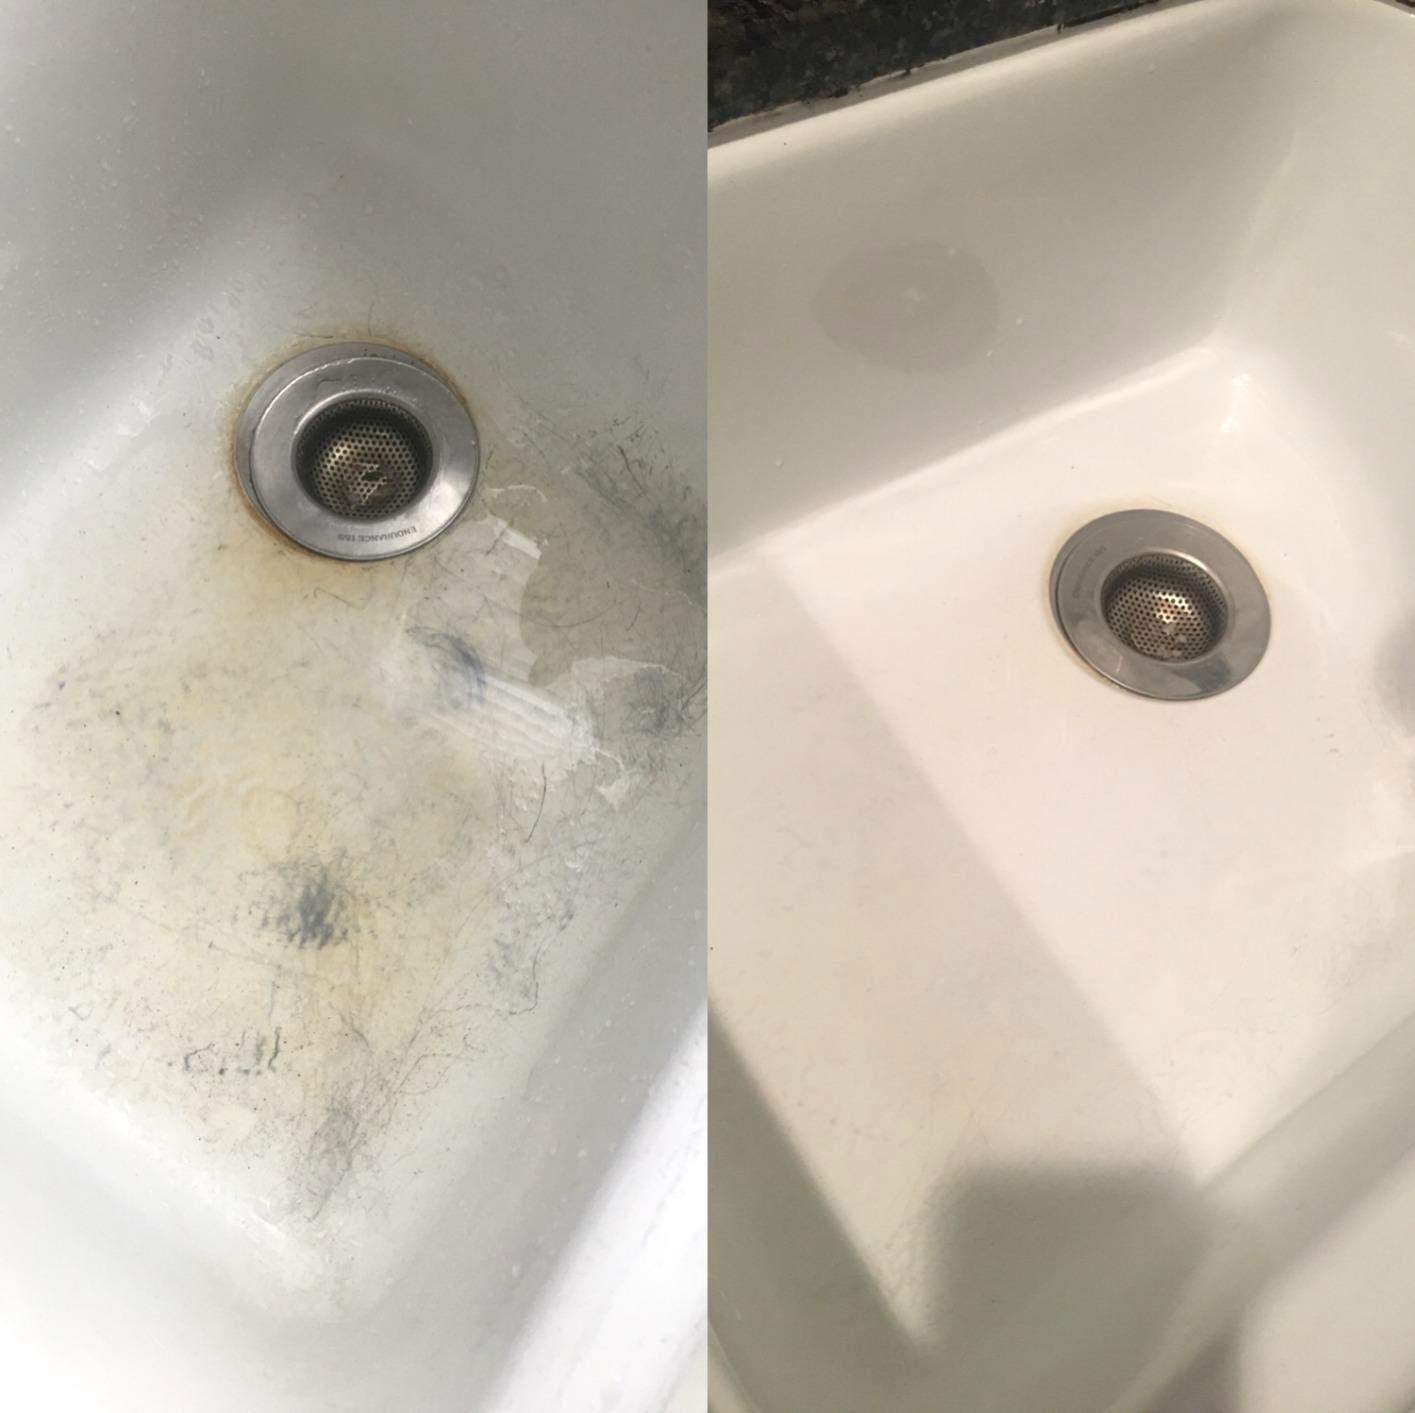 On the left, a white porcelain sink with grey scratches and yellow-brown stains; on the right, the same sink with no scratches or stains